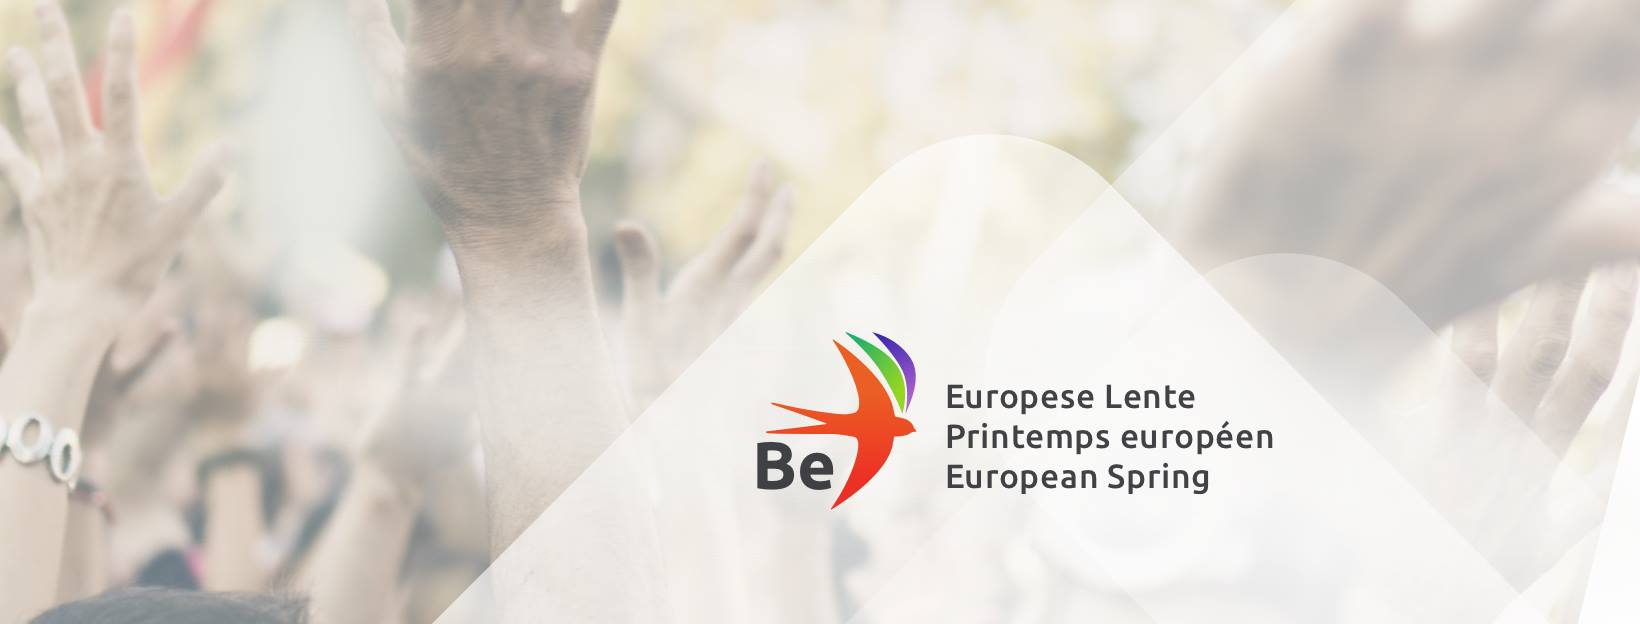 """Laurent de Sutter and Rosita Allinckx to lead Belgium's """"Be European Spring"""" candidates' lists to the European Parliament elections"""